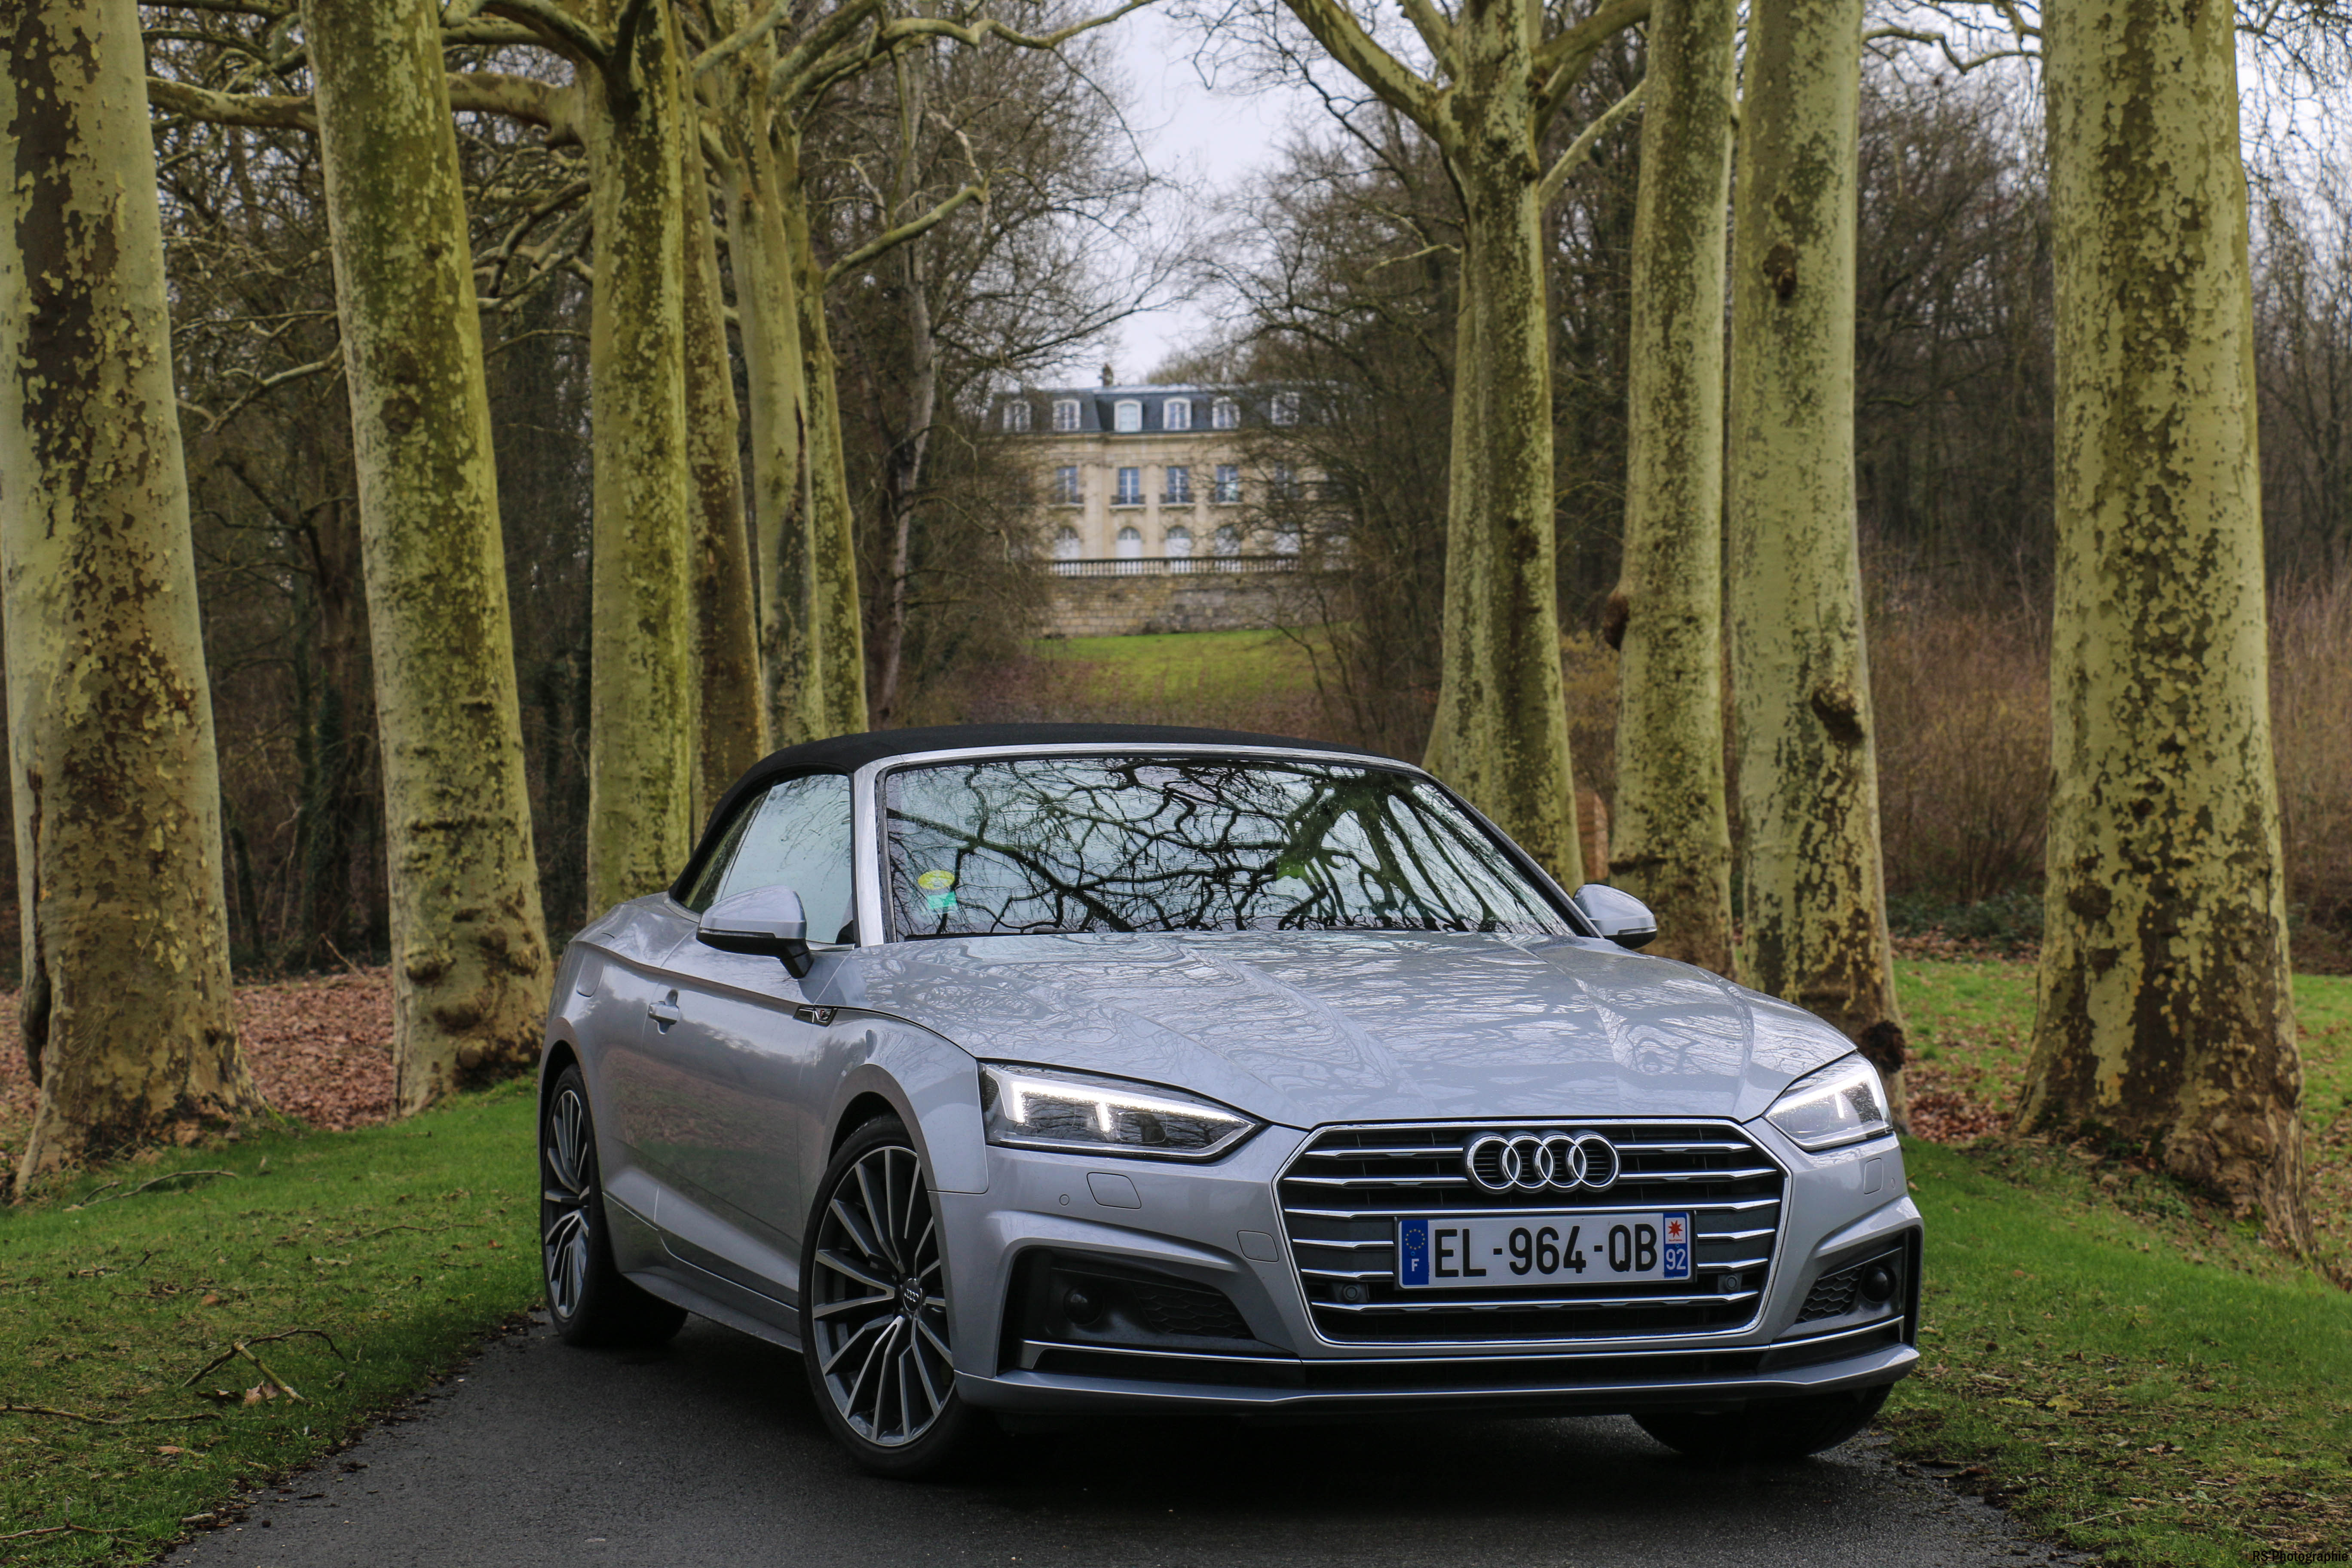 audia5cab10-audi-a5-190-tdi-cabriolet-avant-front-Arnaud Demasier-RSPhotographie